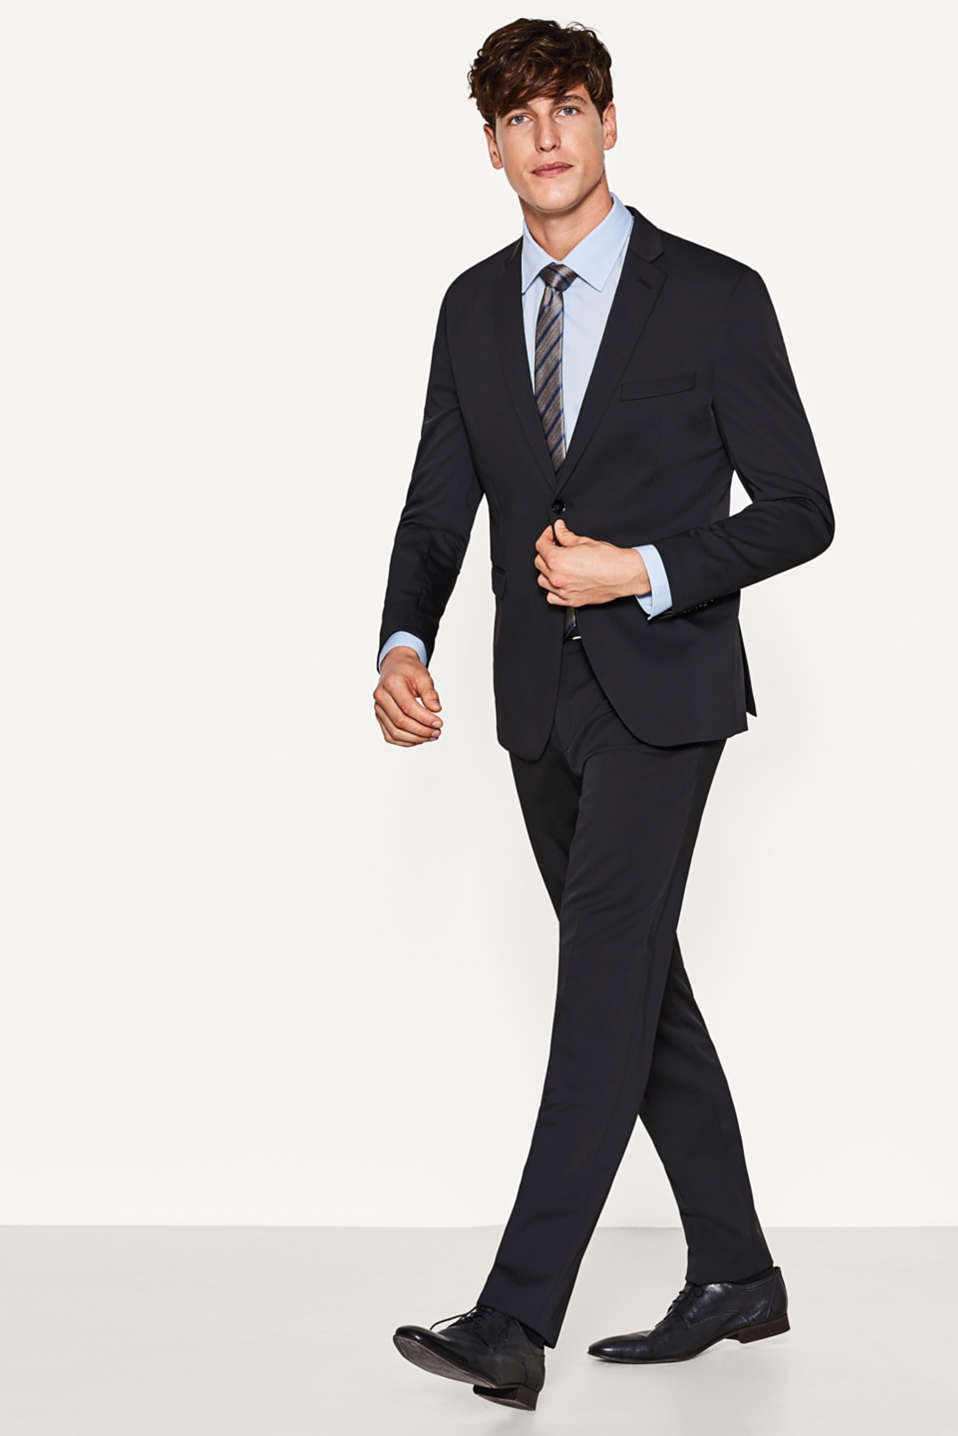 Soft stretchy blazer, technical touch